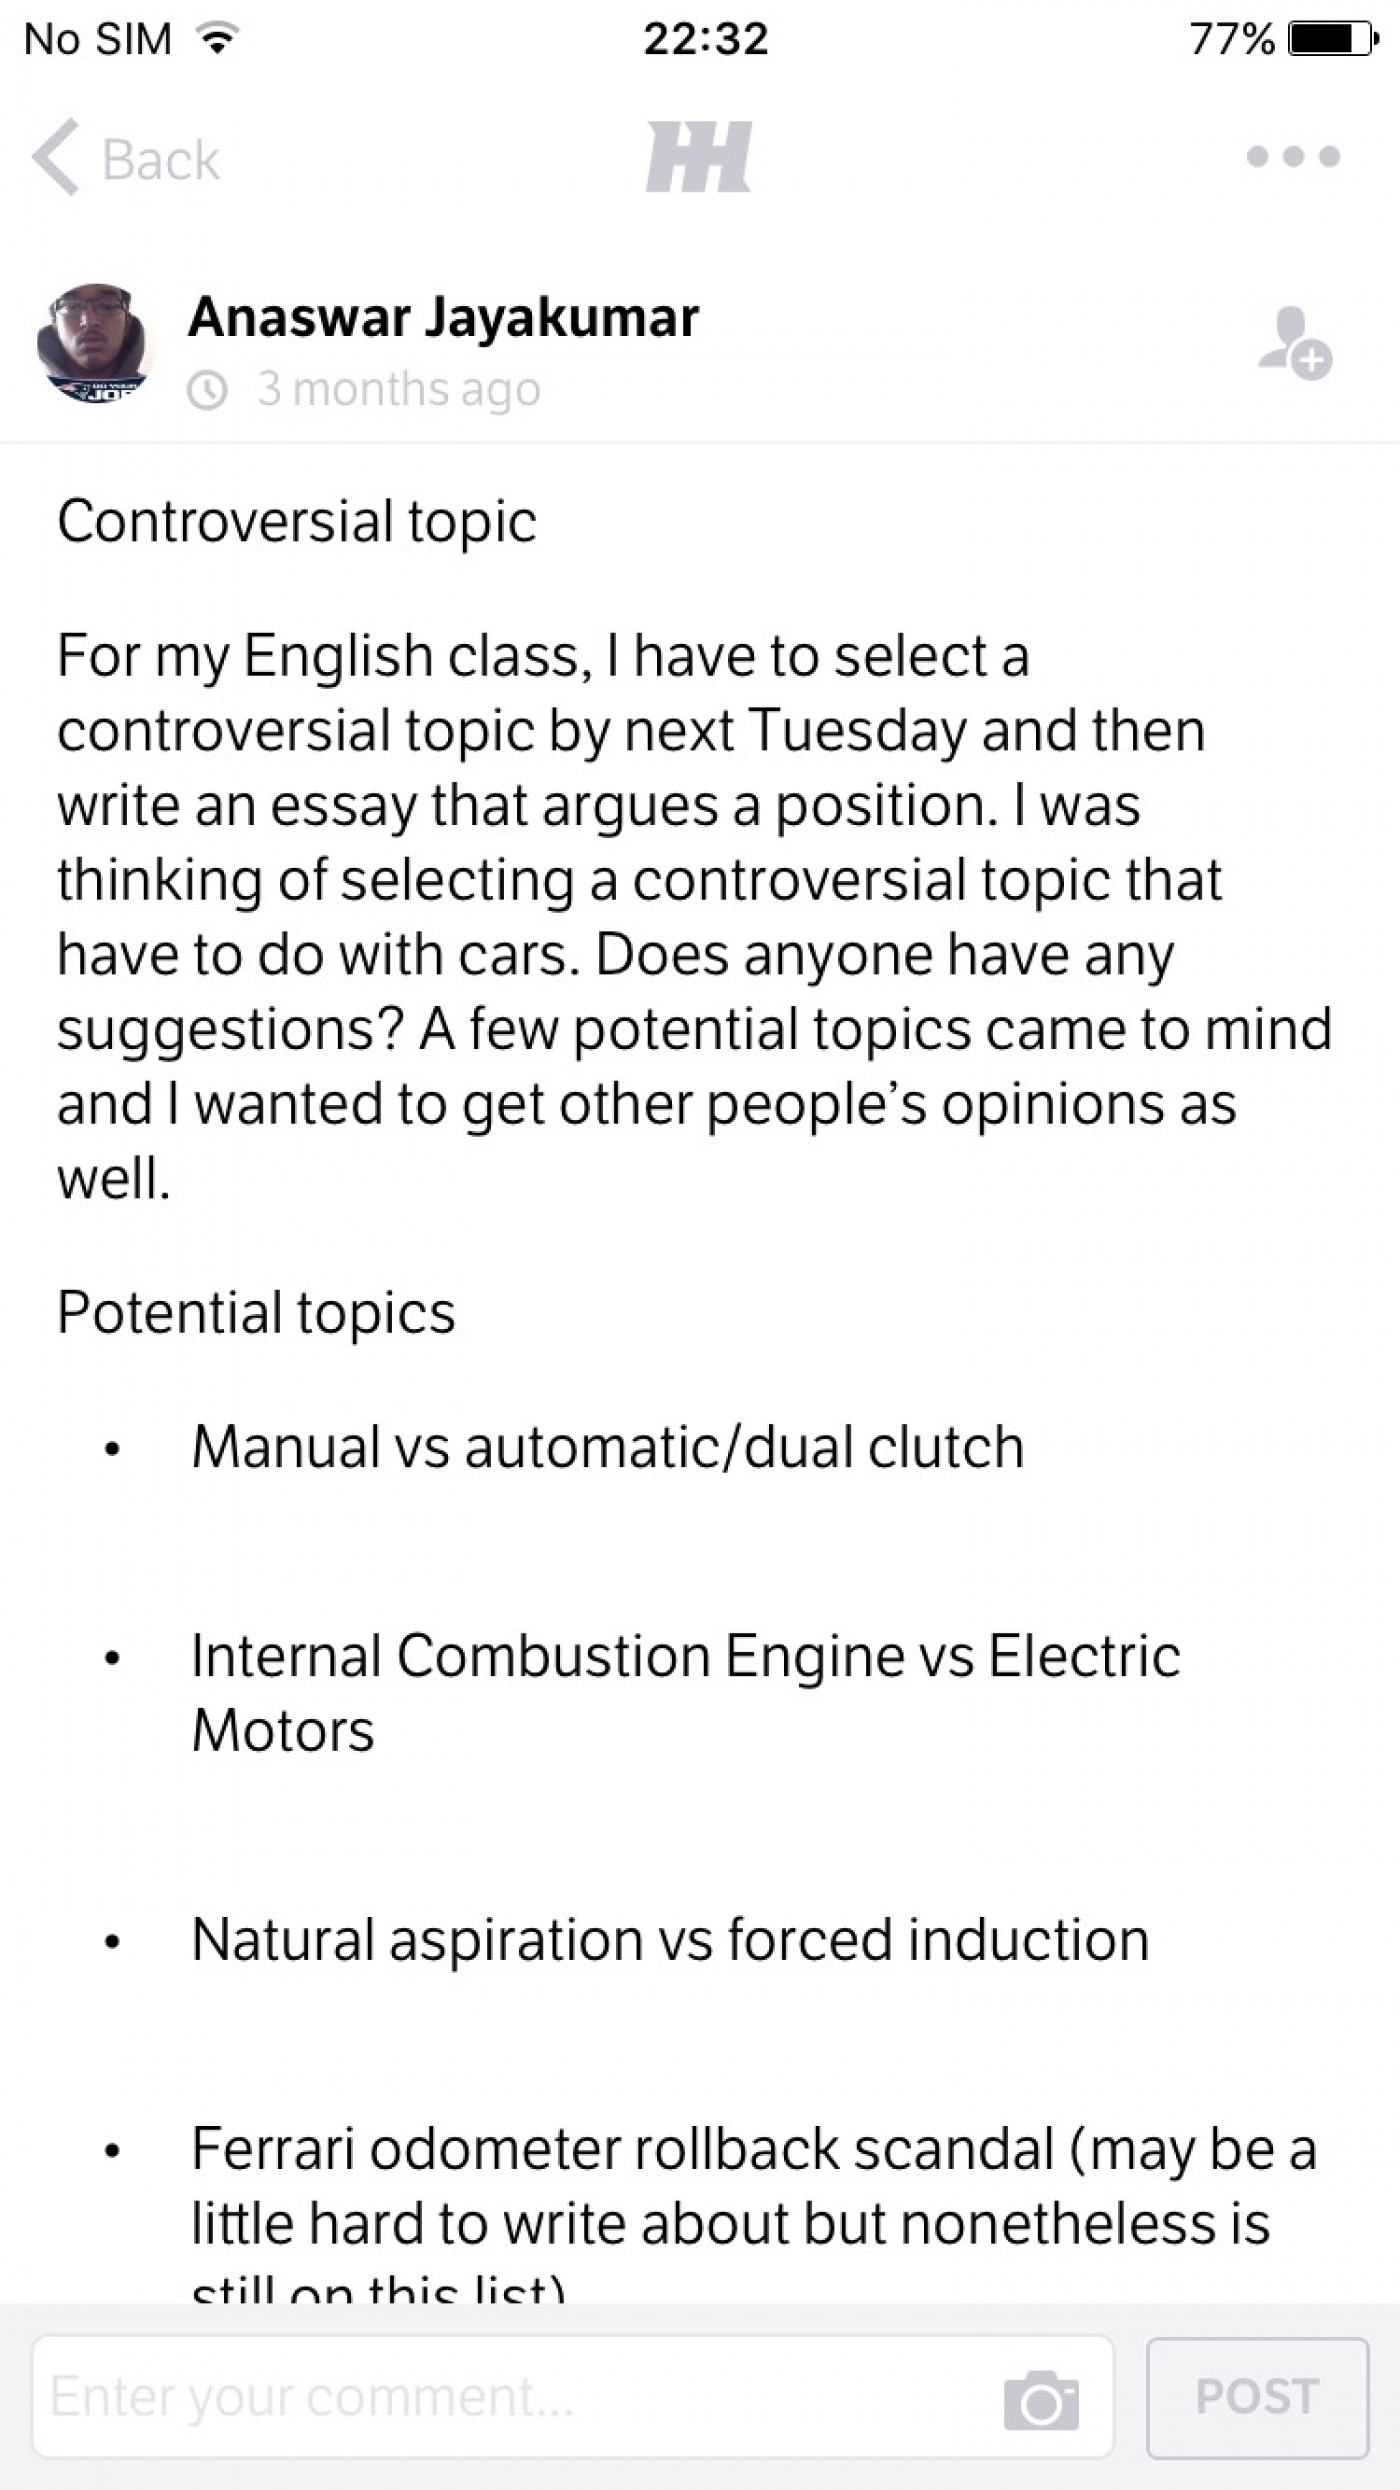 011 Controversial Topic Essay Topics Example Research Paper Outline20 Breathtaking Issue 1400